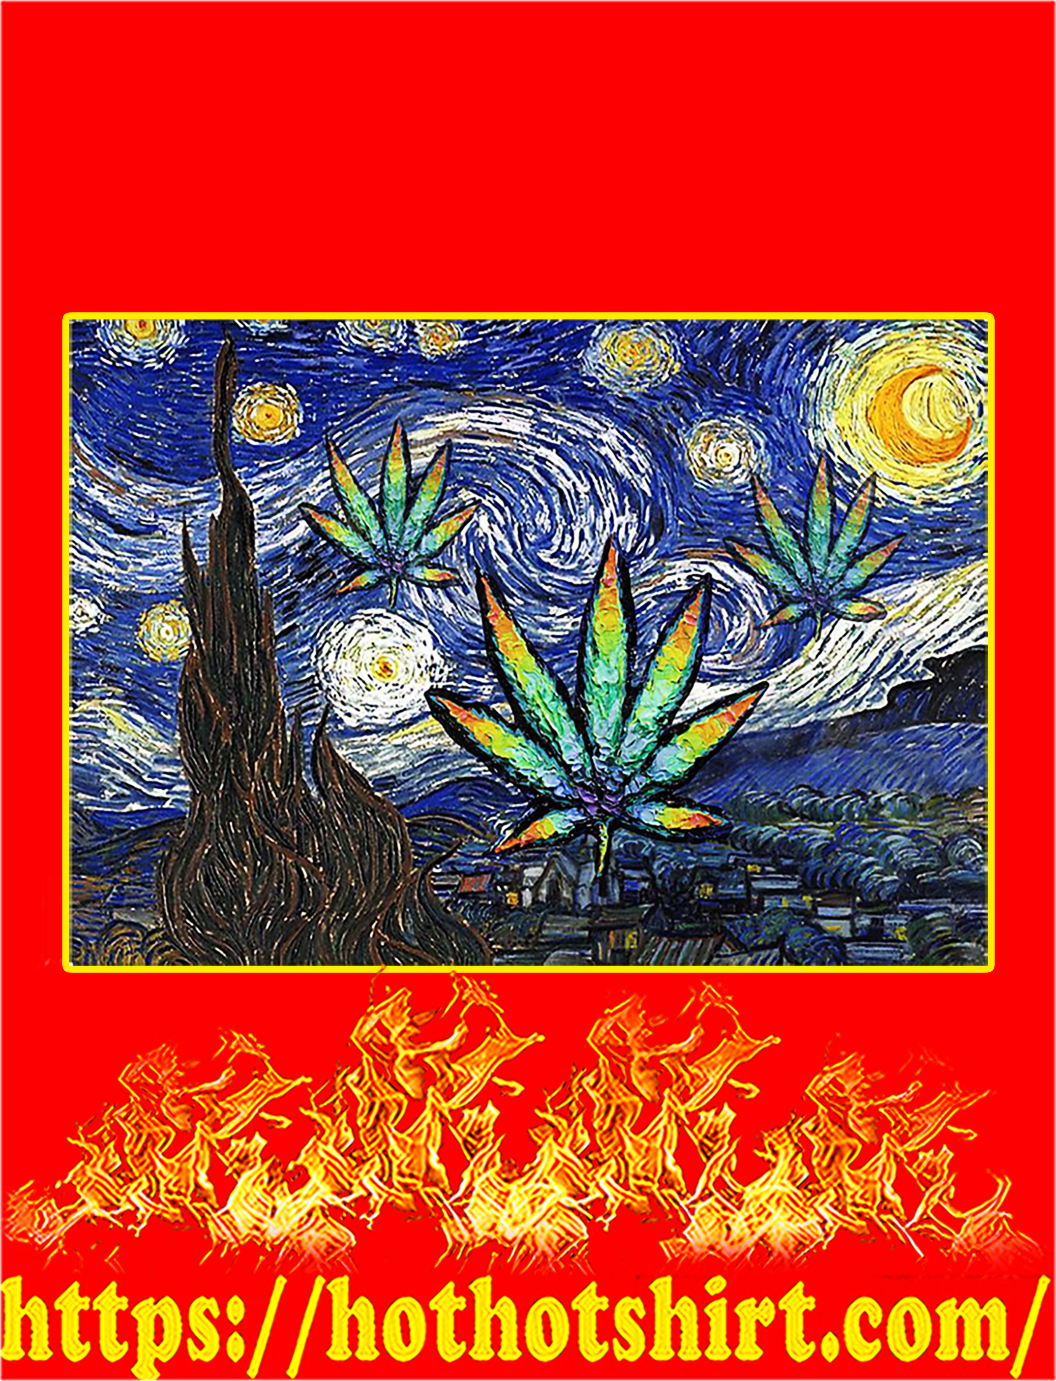 Weed cannabis starry night van gogh poster - A1